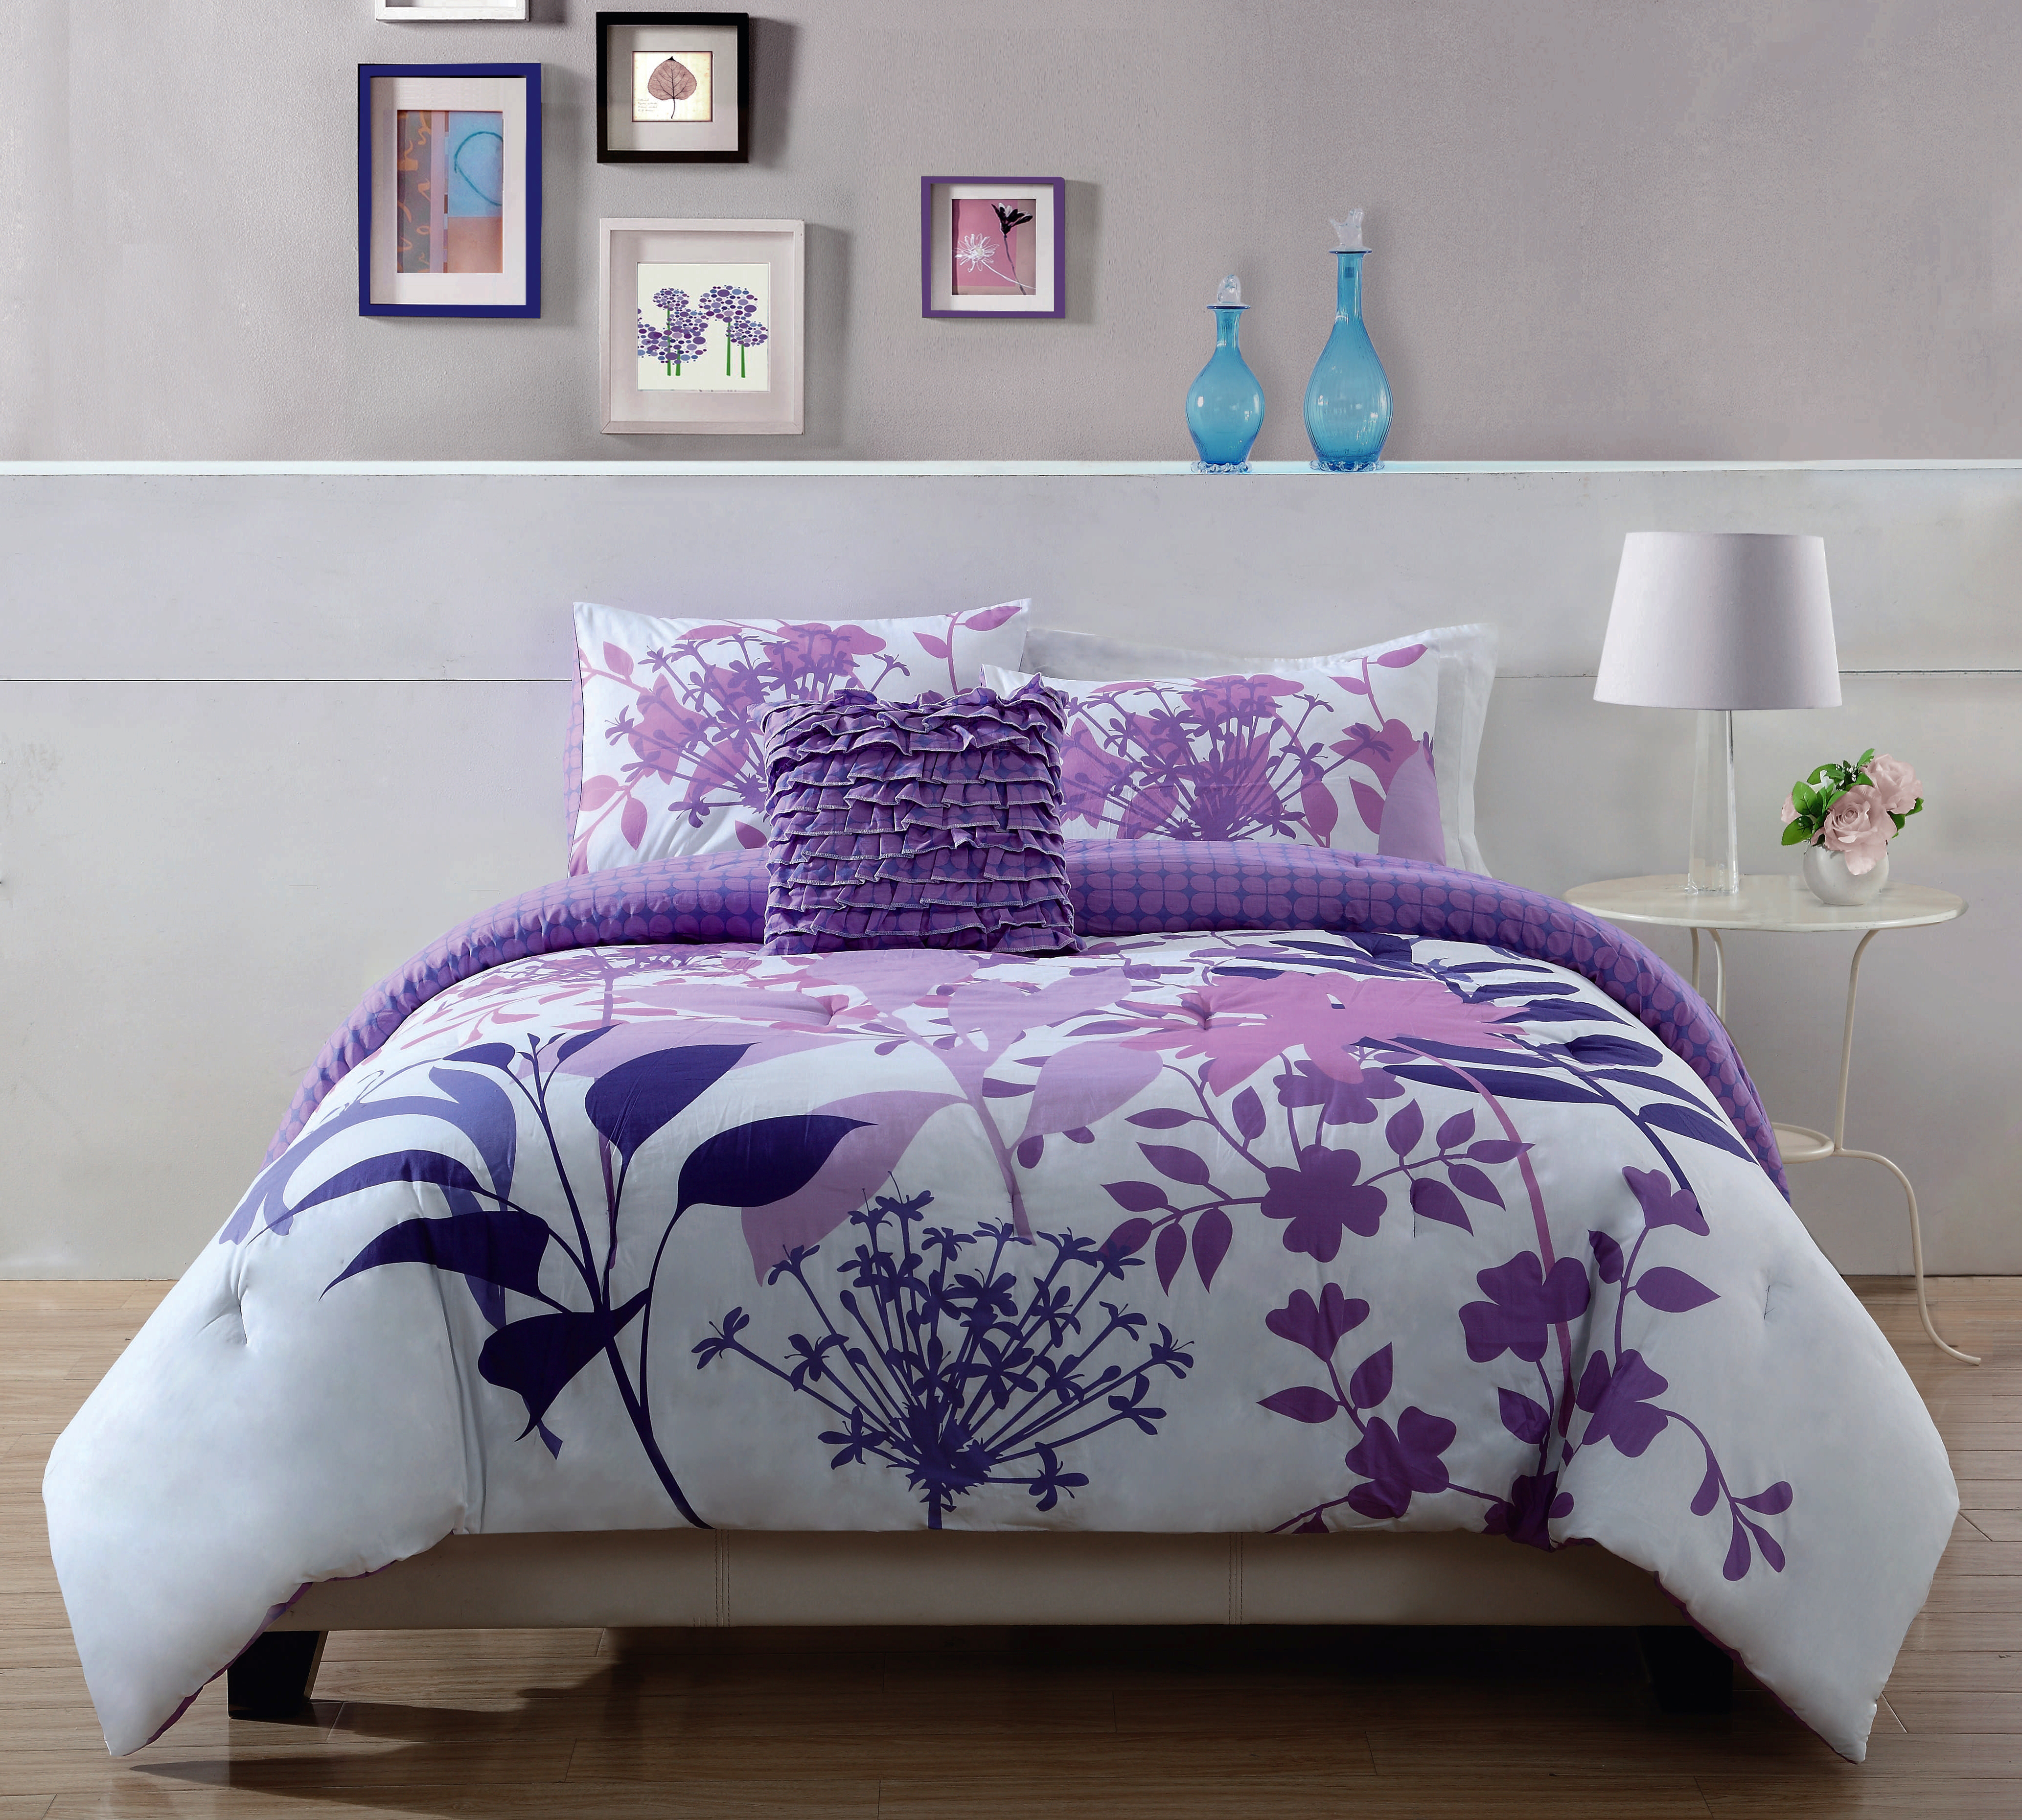 Bedroom Cute Teenage Bedspreads Design For Girl Bedroom Ideas